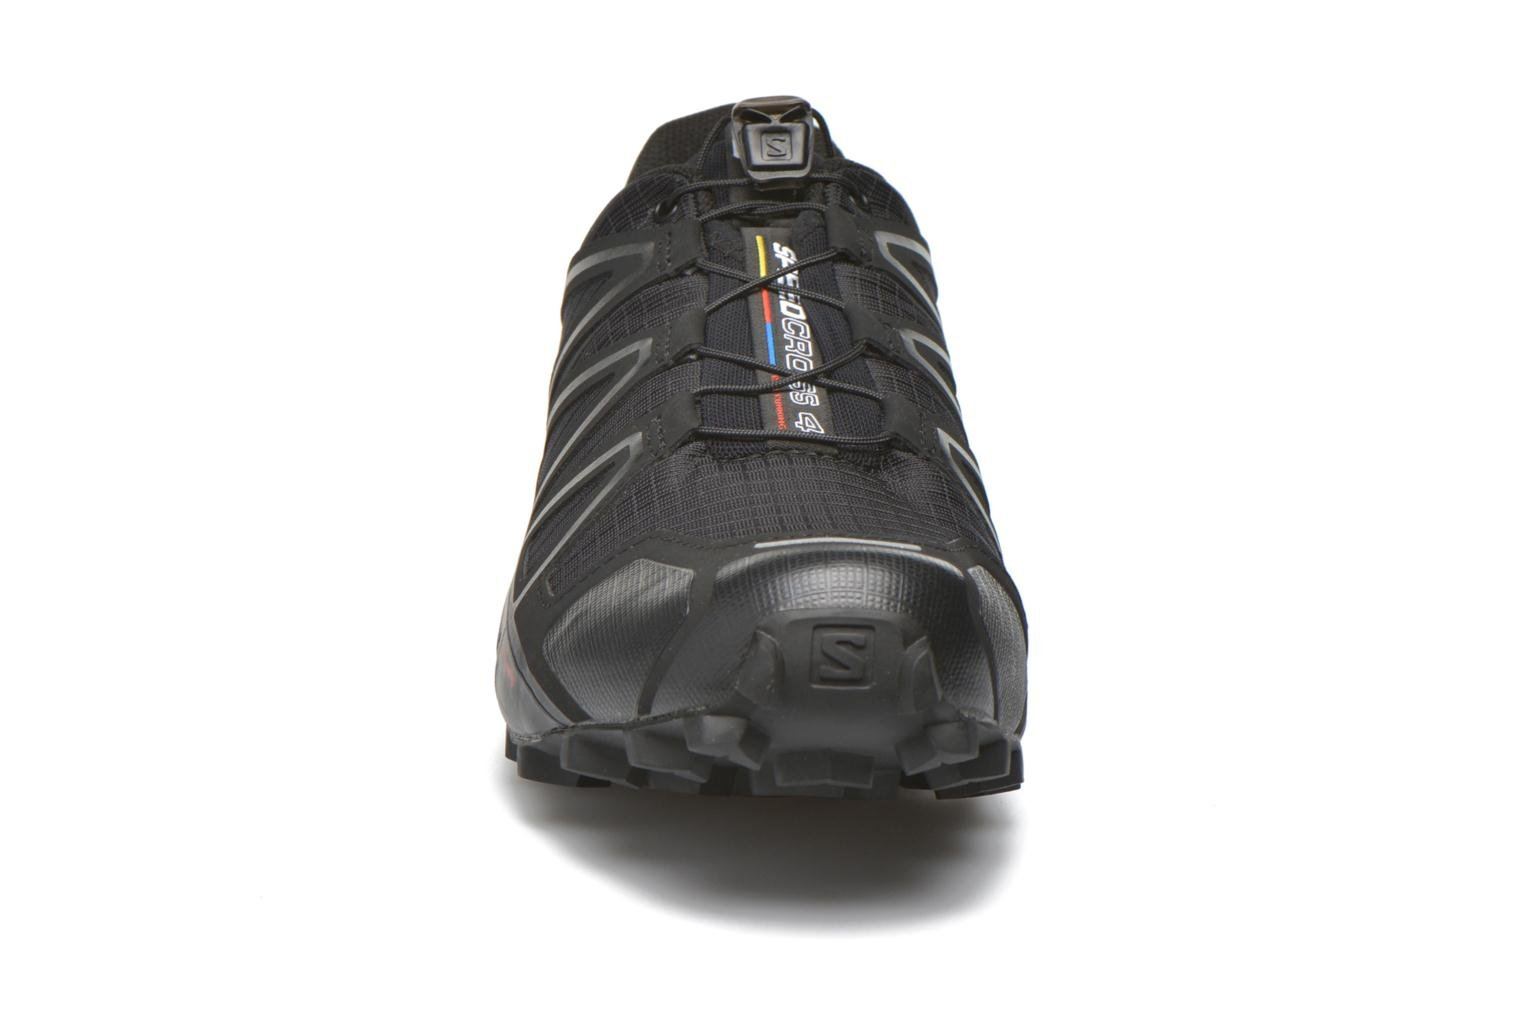 Zapatillas de deporte Salomon Speedcross 4 Negro vista del modelo